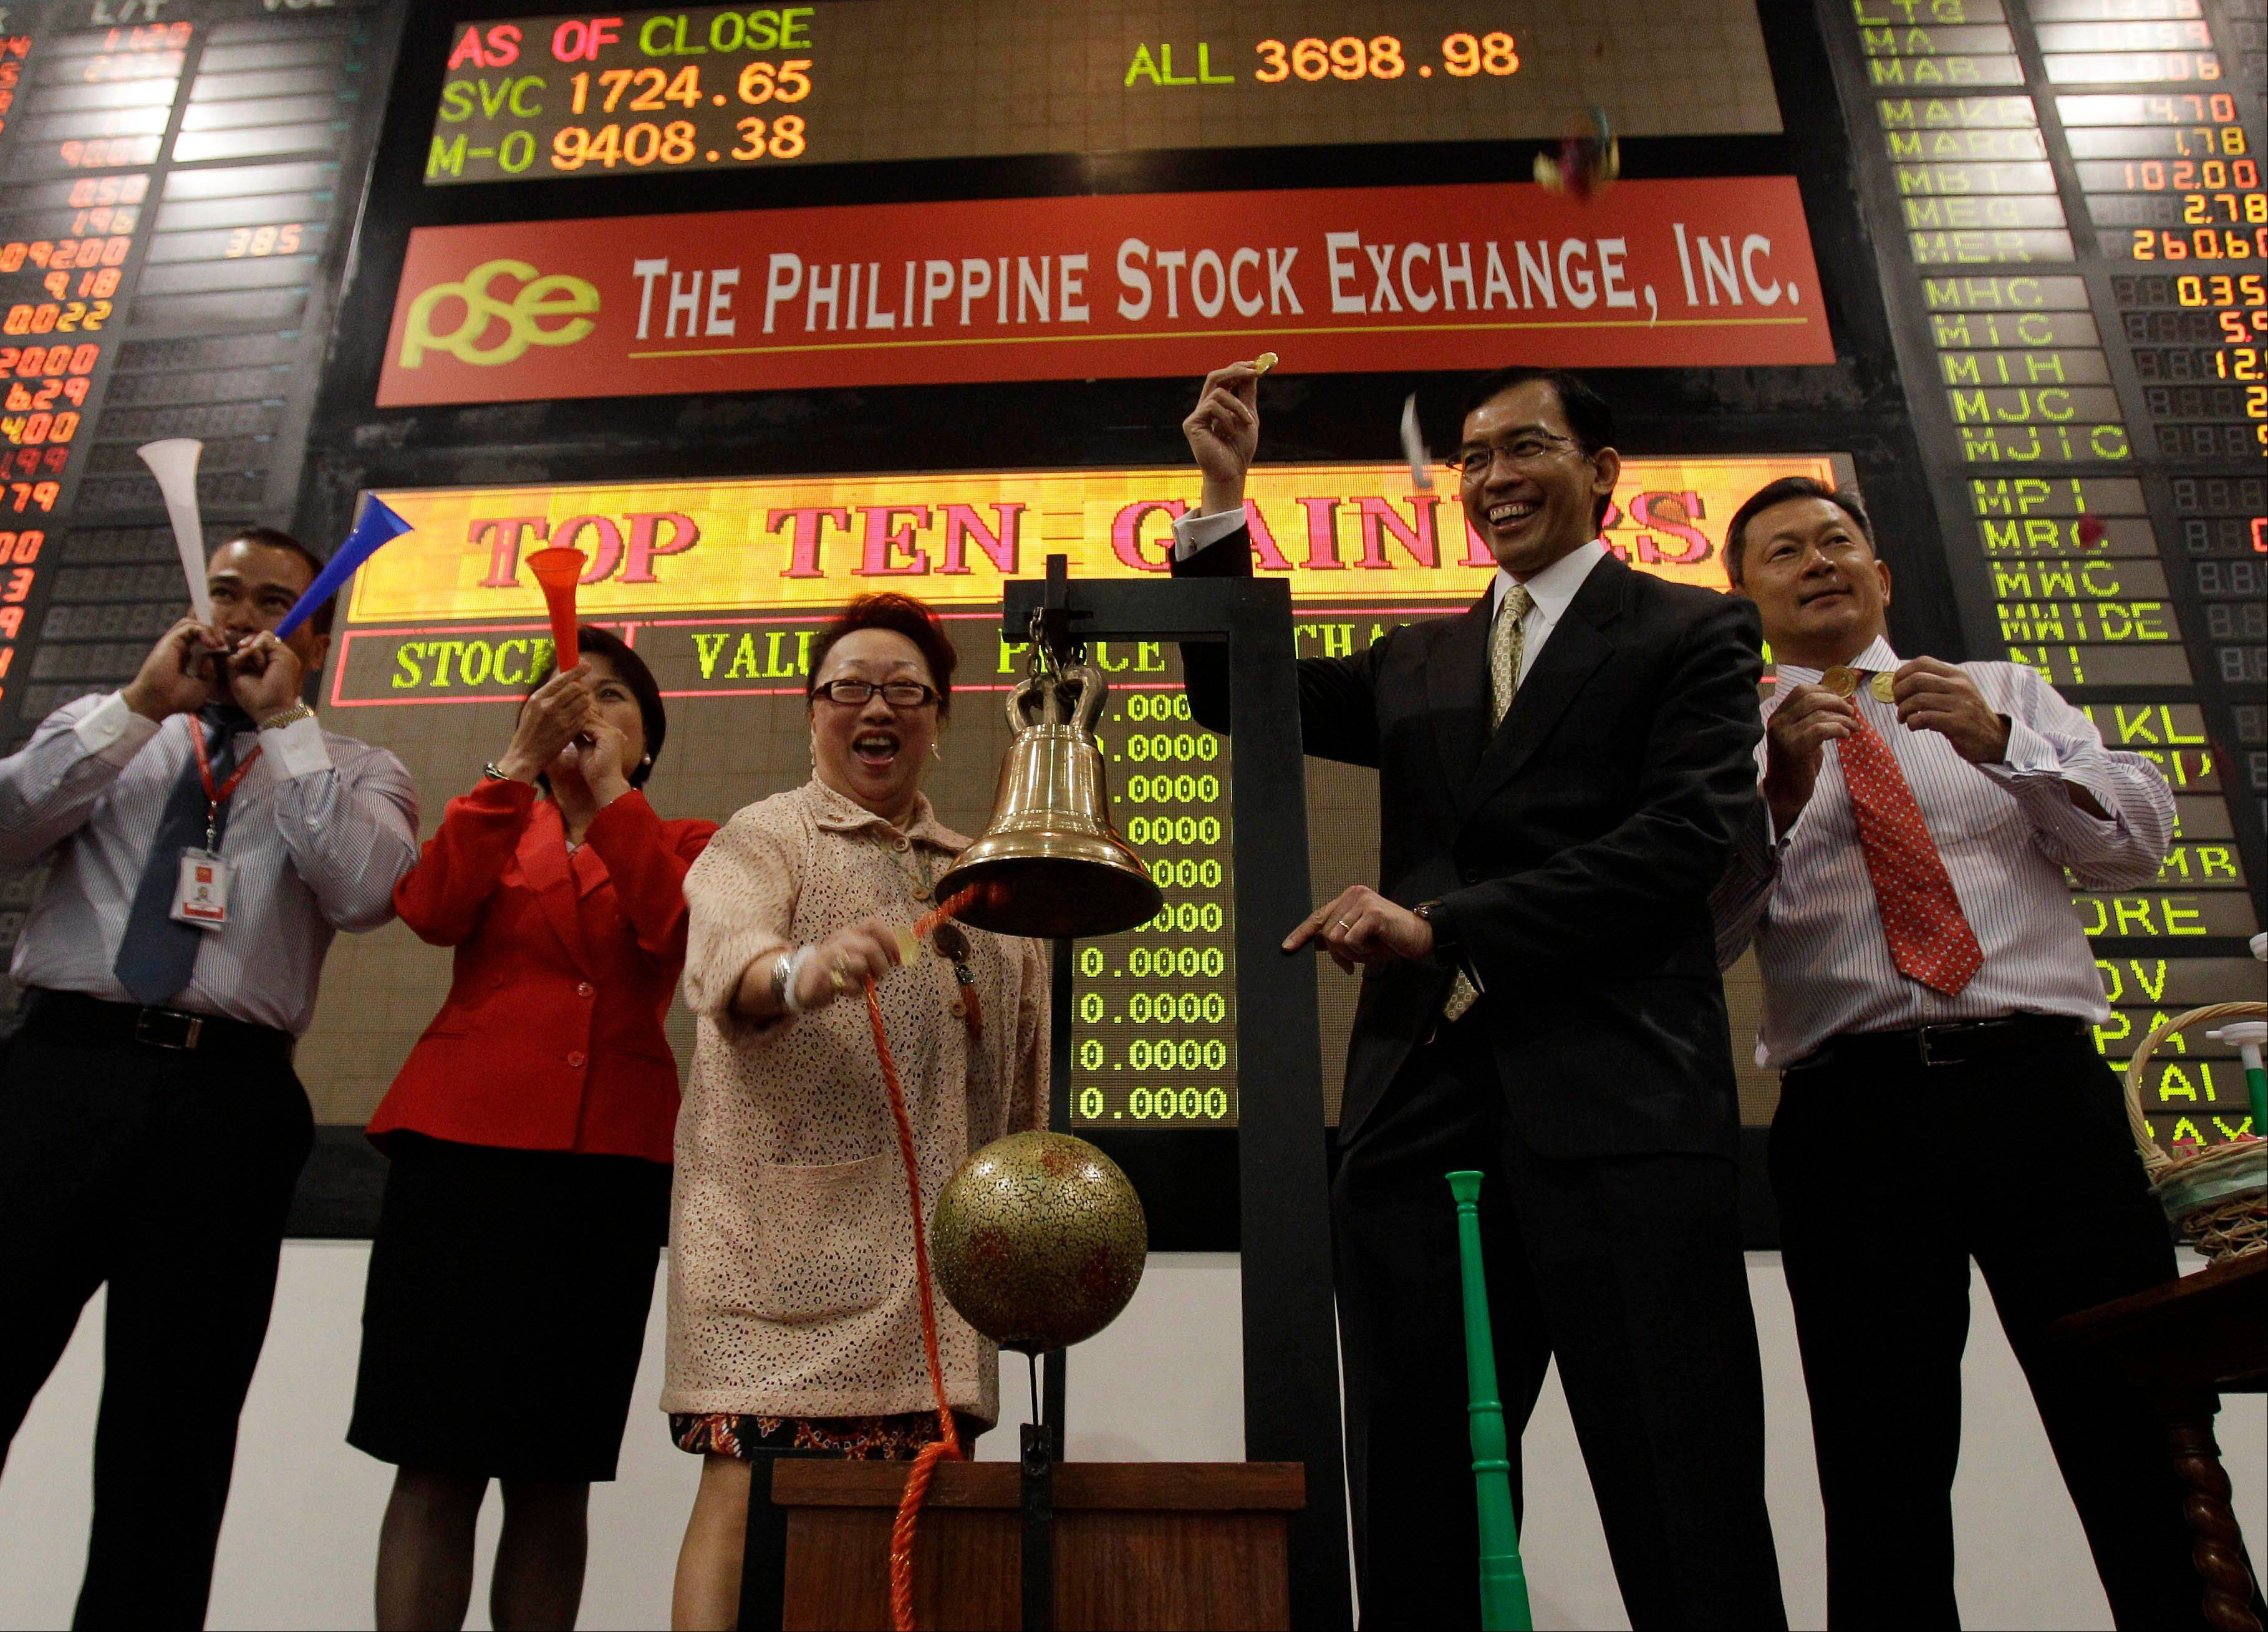 Philippine Stock Exchange President and CEO Hans Sicat, second from right, gestures as PSE treasurer Ma. Vivian Yuchengco rings the bell to signal the start of the first day of trading at Philippine Stock Exchange at the financial district of Makati, south of Manila, Philippines on Wednesday Jan. 2.